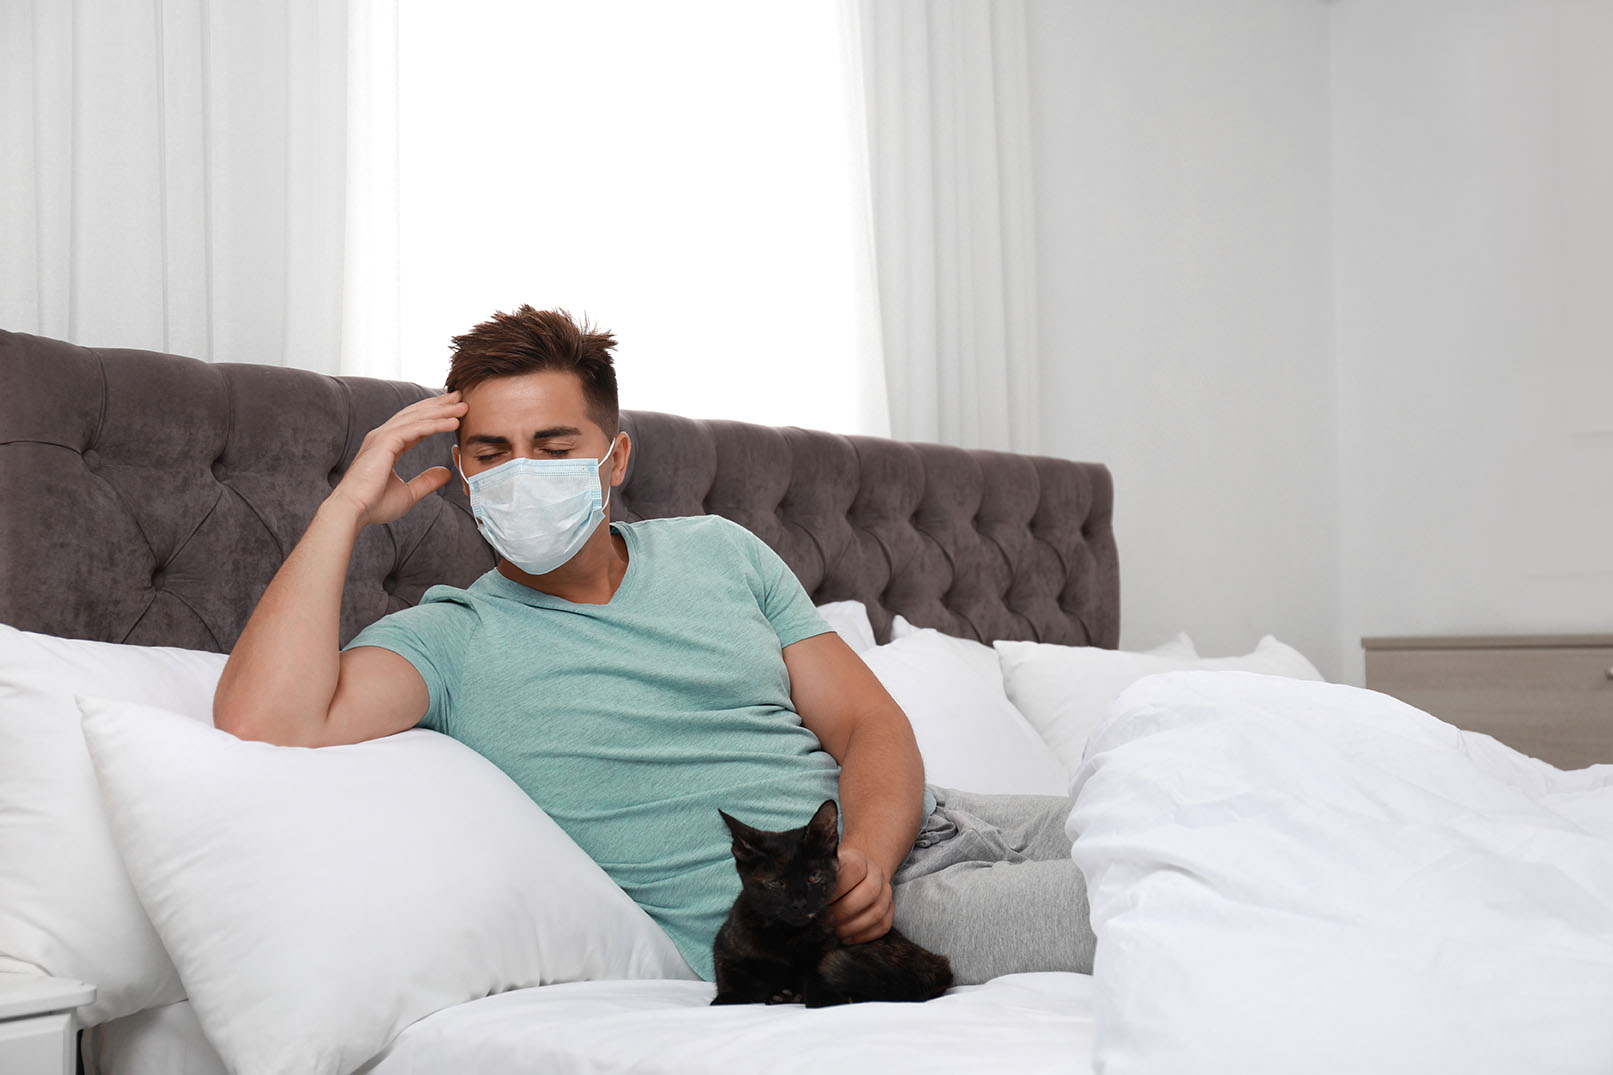 man sick with cat beside him